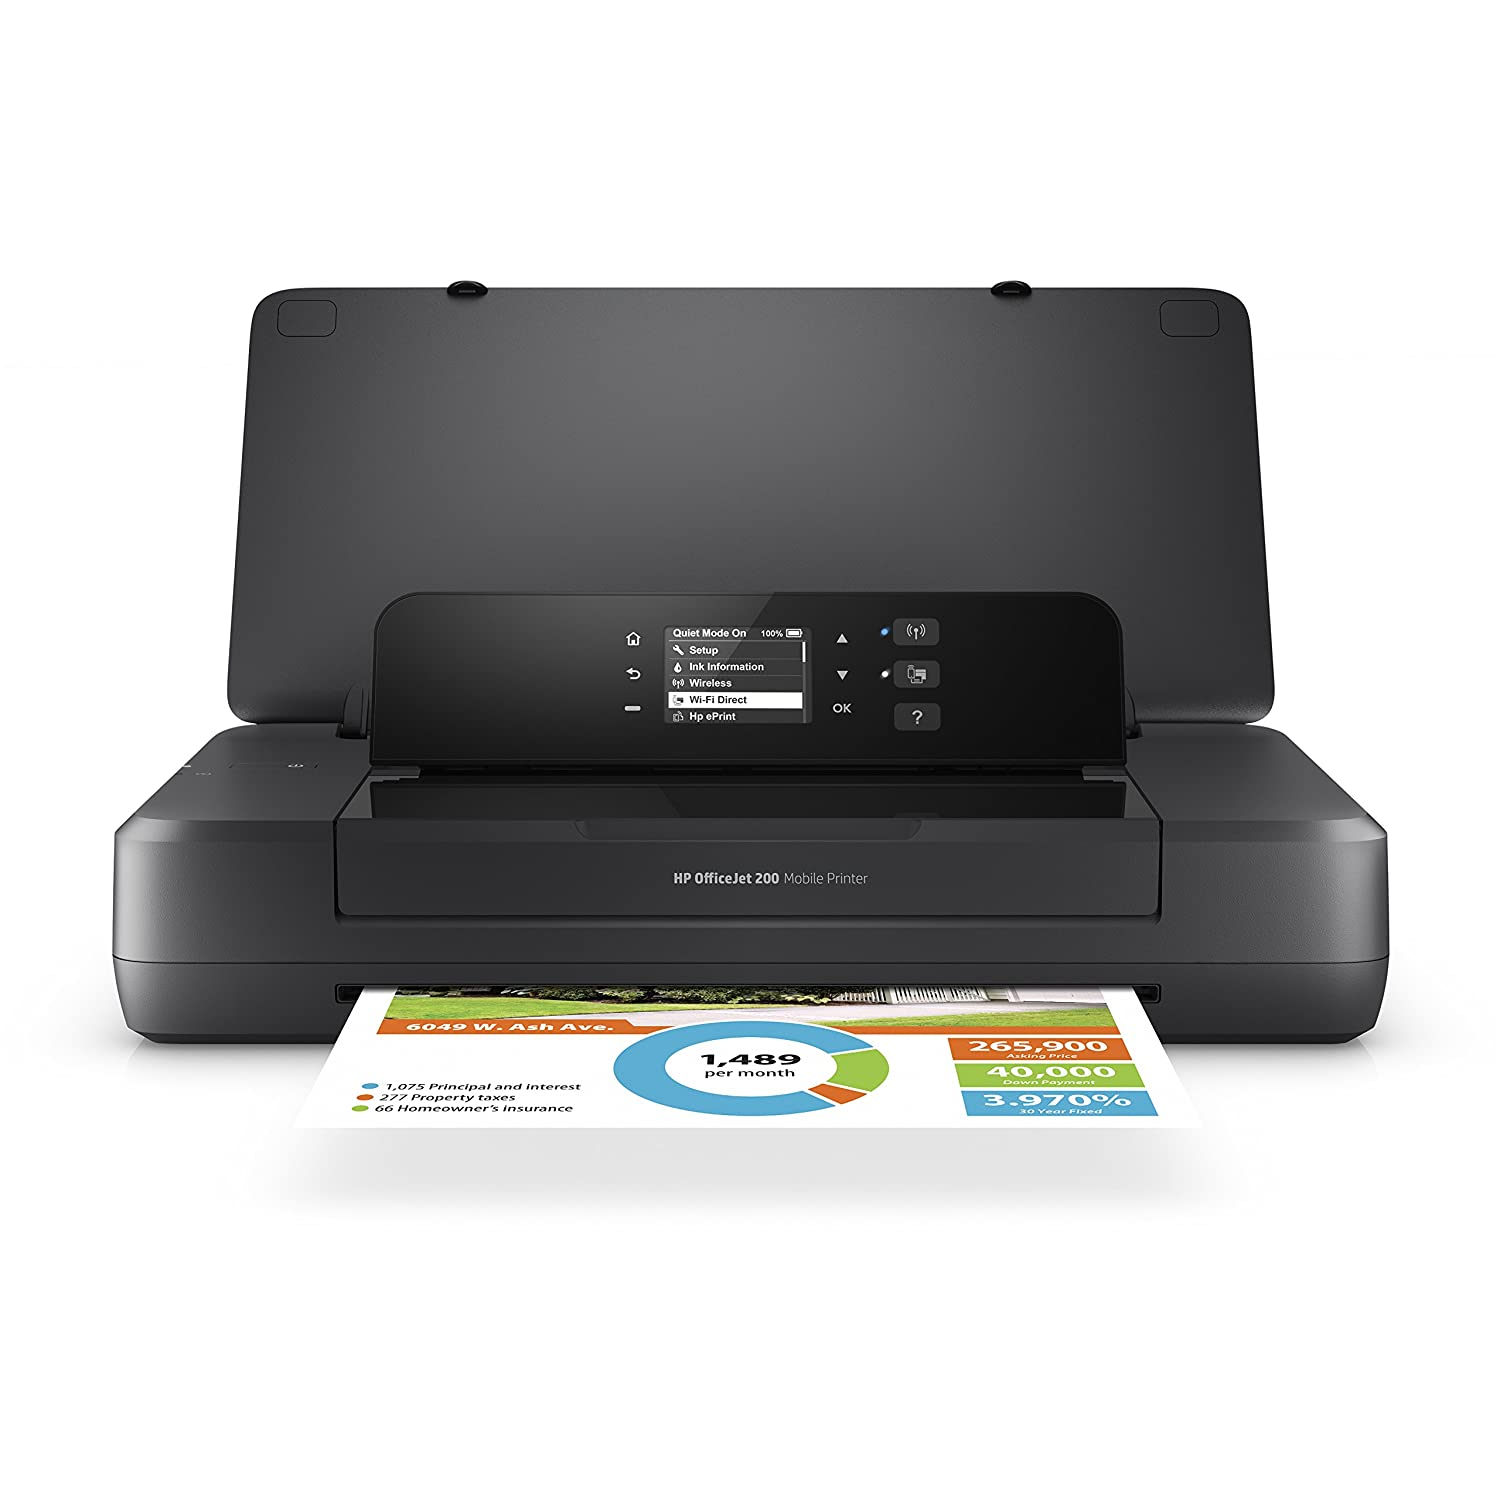 HP Officejet 200 Review